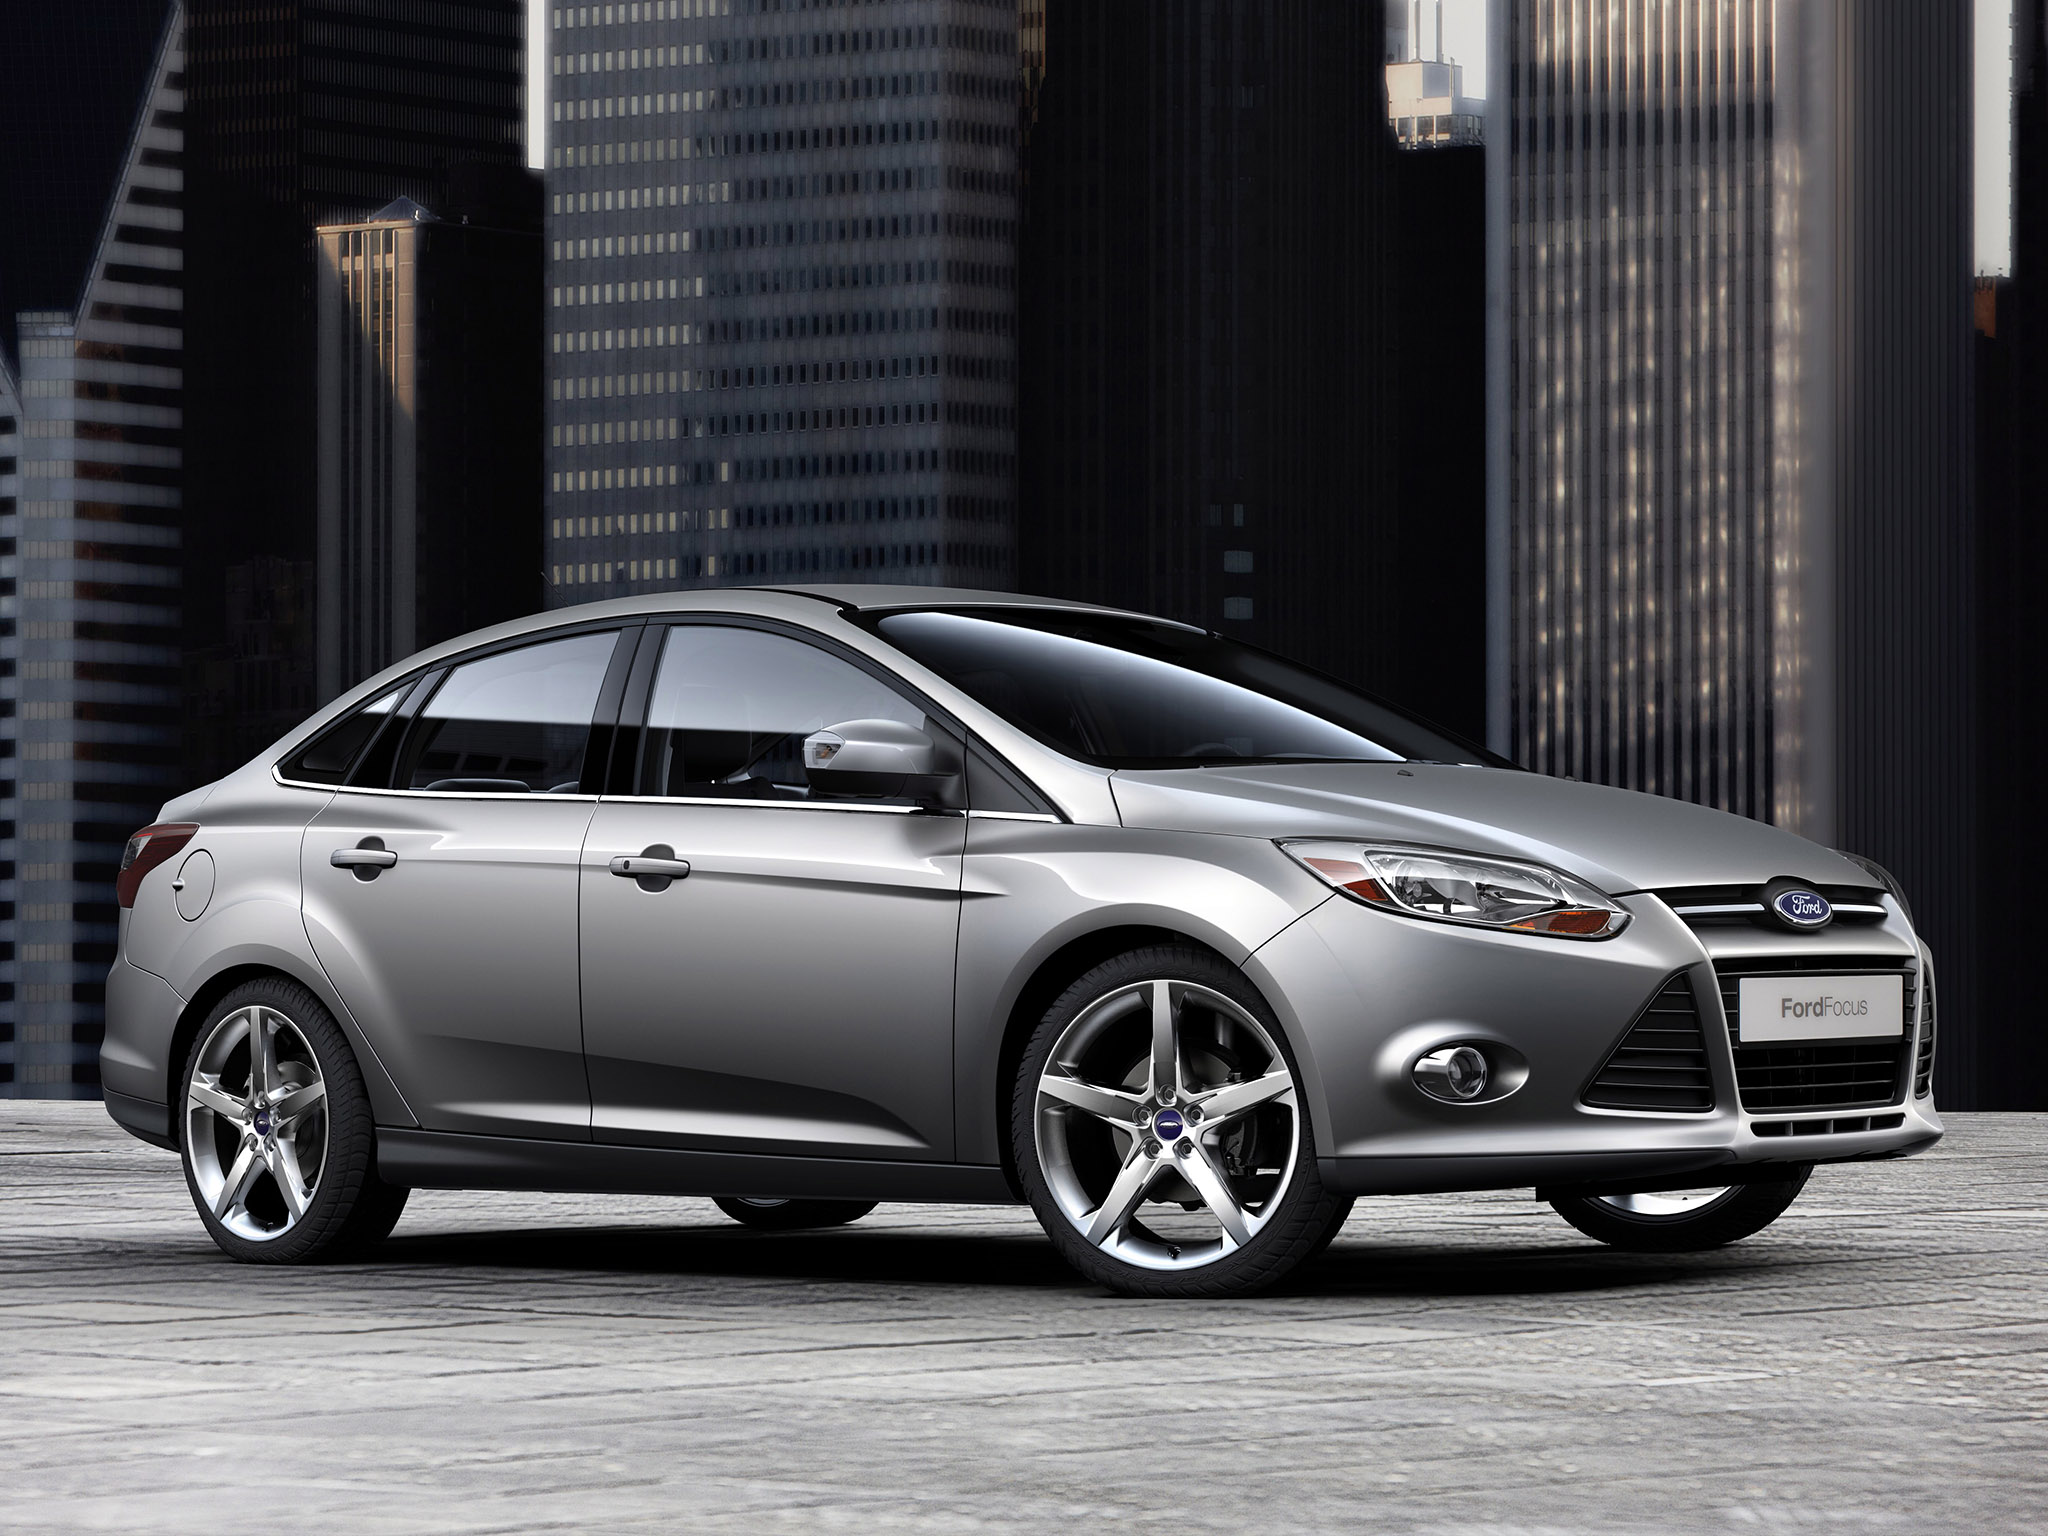 ford focus usa wallpaper